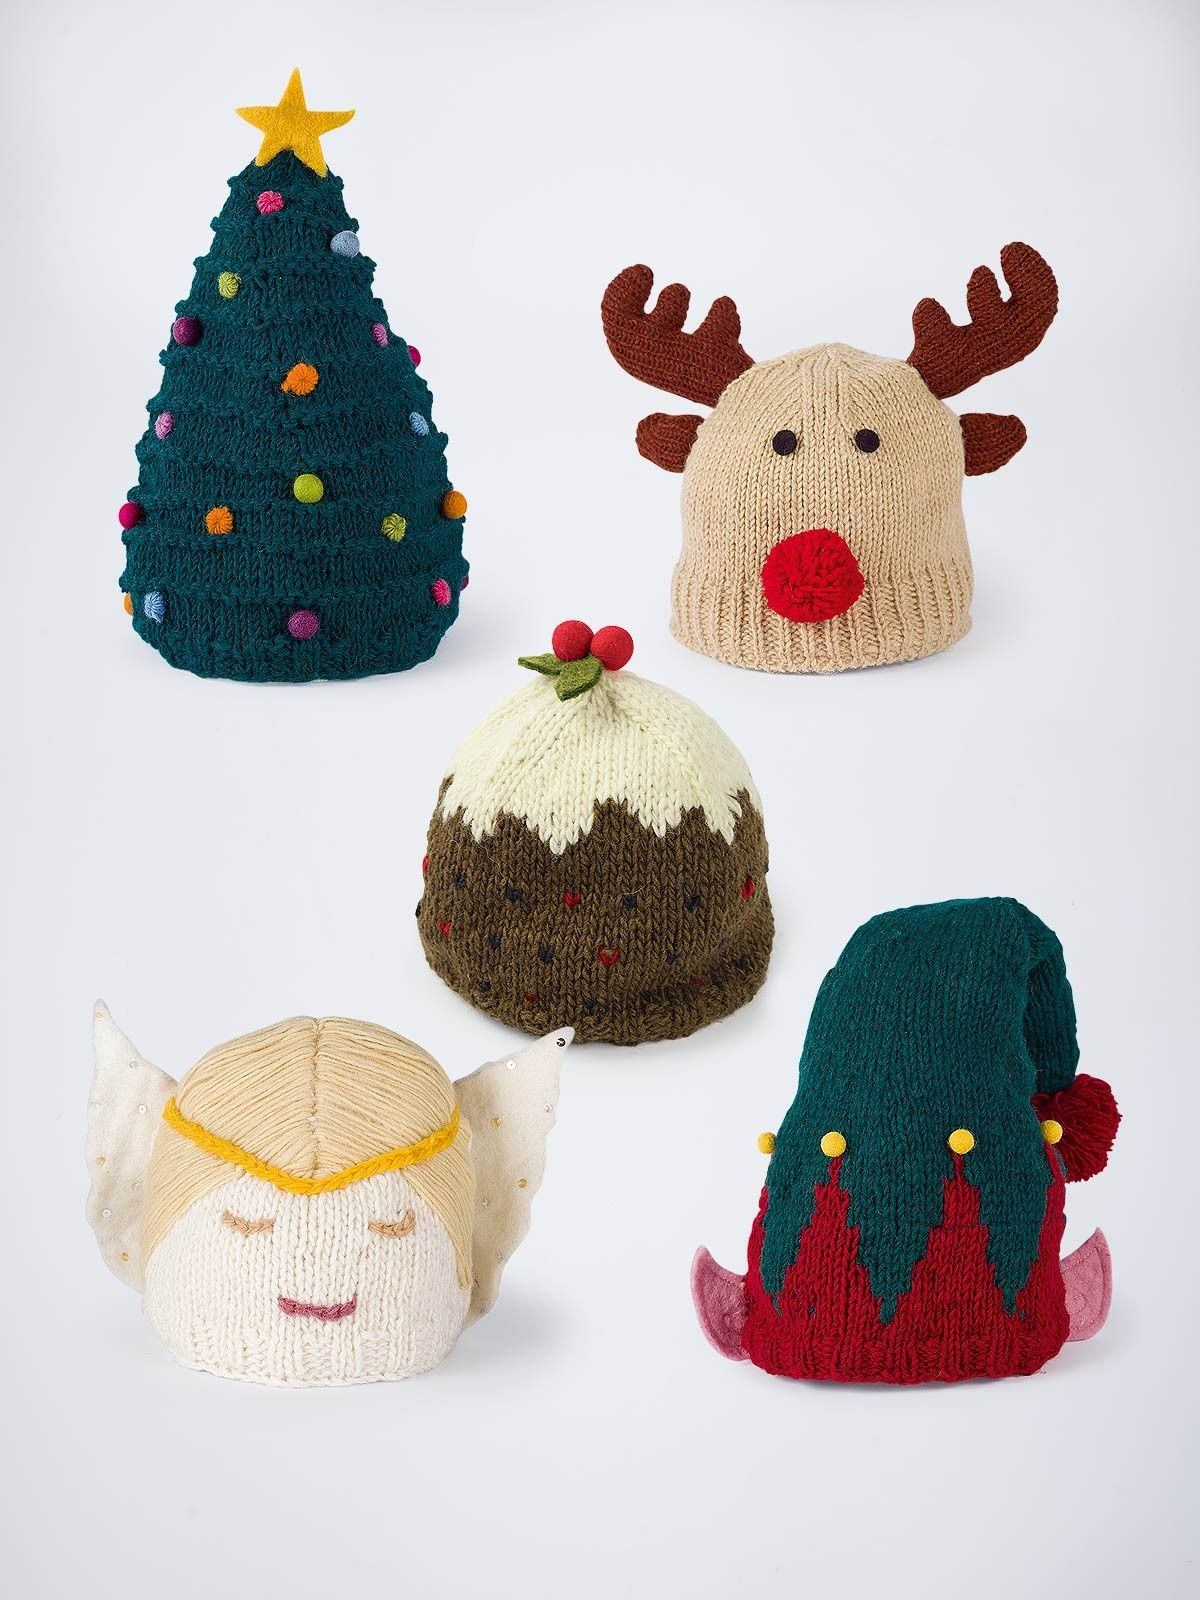 Christmas Hats - Christmas is coming and this amusing bit of knit ...